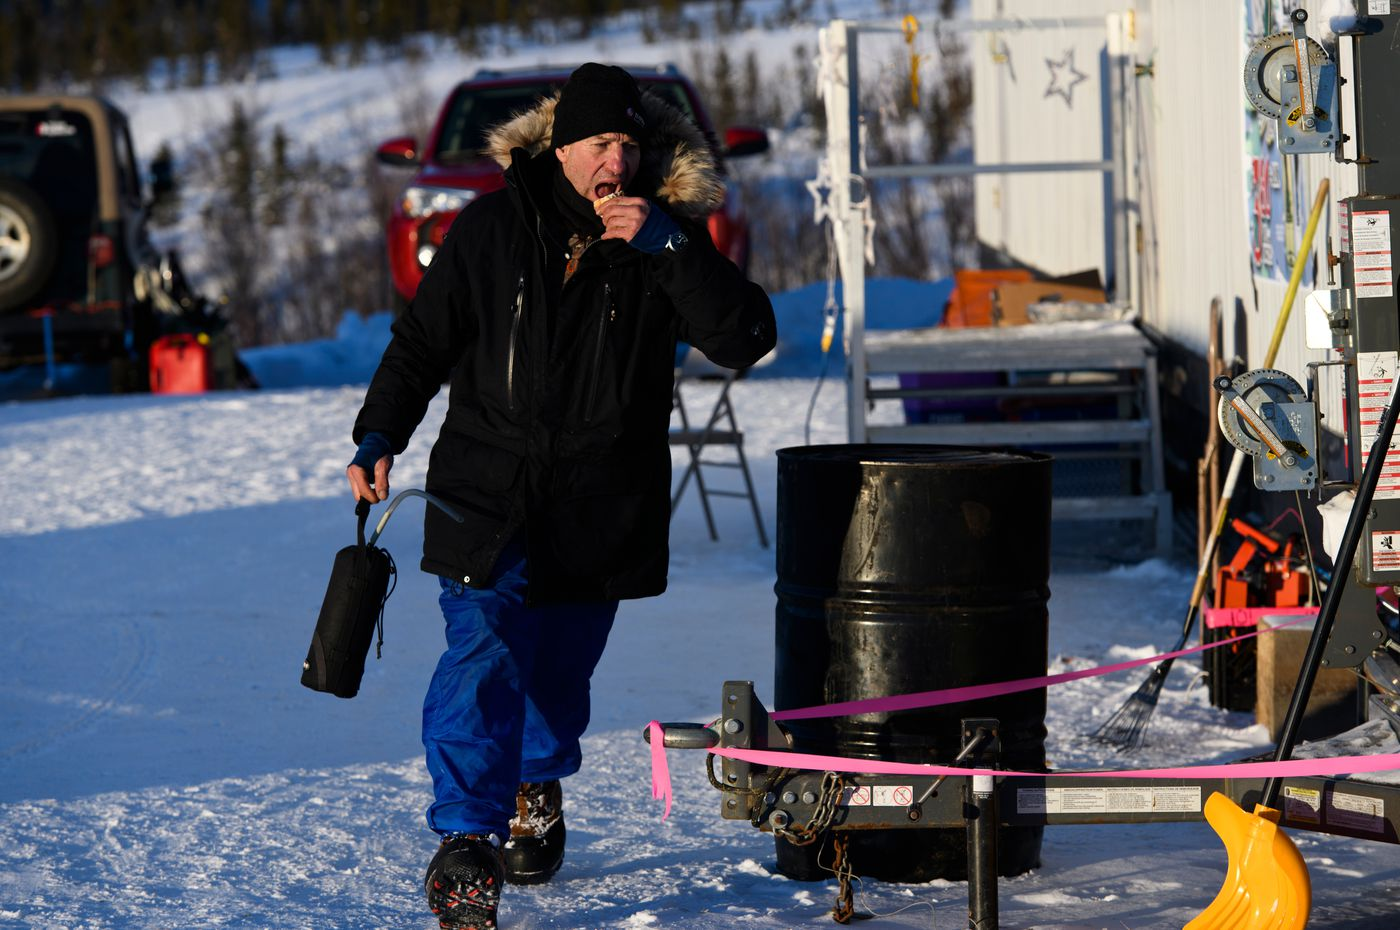 Hans Gatt runs back to his sled after filling his bottle and getting some food at the Mile 101 checkpoint. Yukon Quest International Sled Dog Race frontrunners passed checkpoints along the Steese Highway on February 10, 2019. (Marc Lester / ADN)